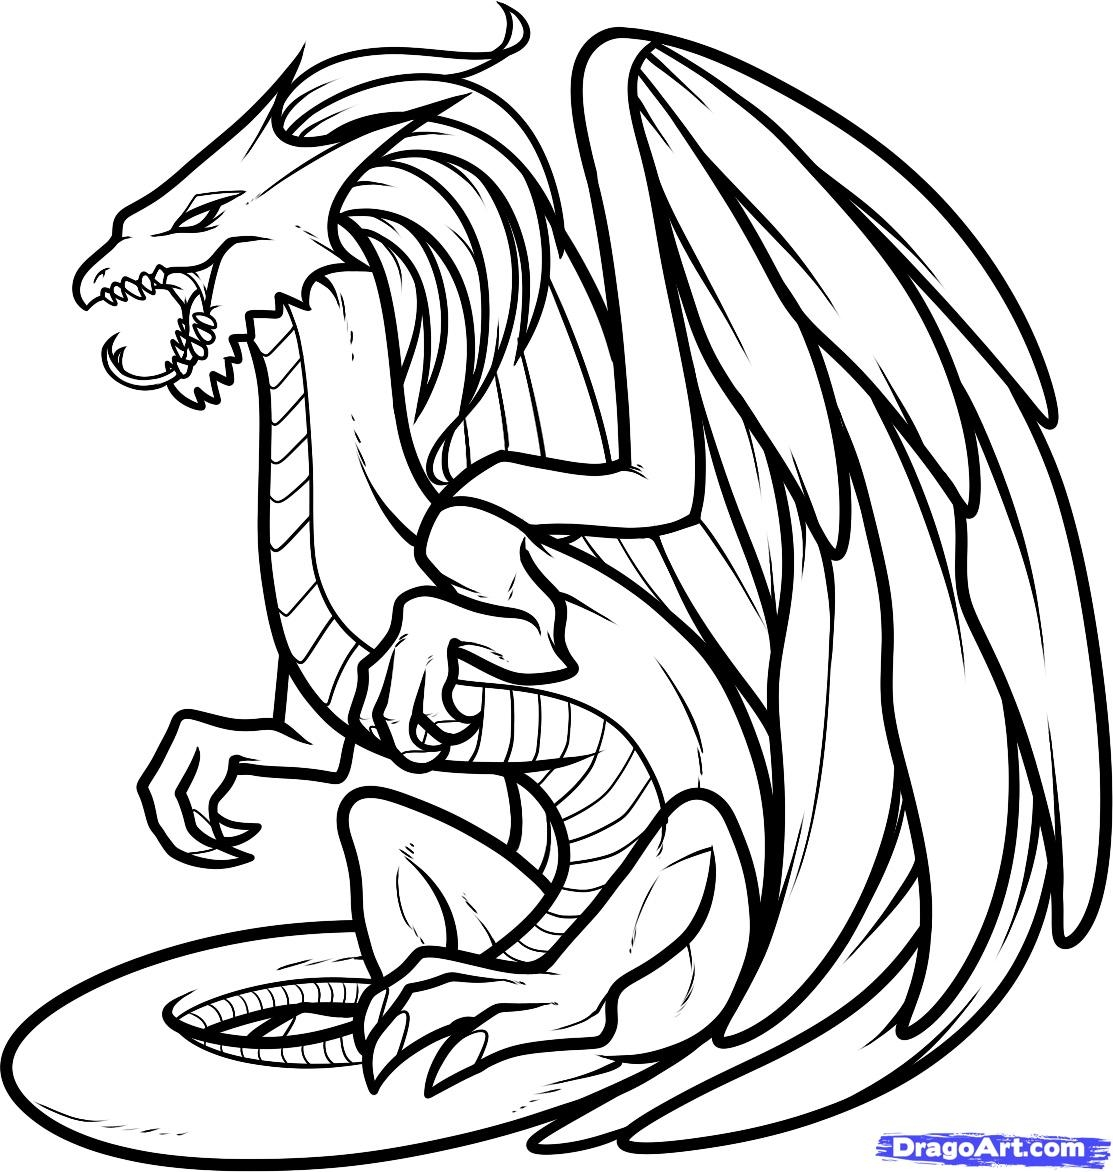 25 Realistic Dragon Coloring Pages Compilation | FREE COLORING PAGES